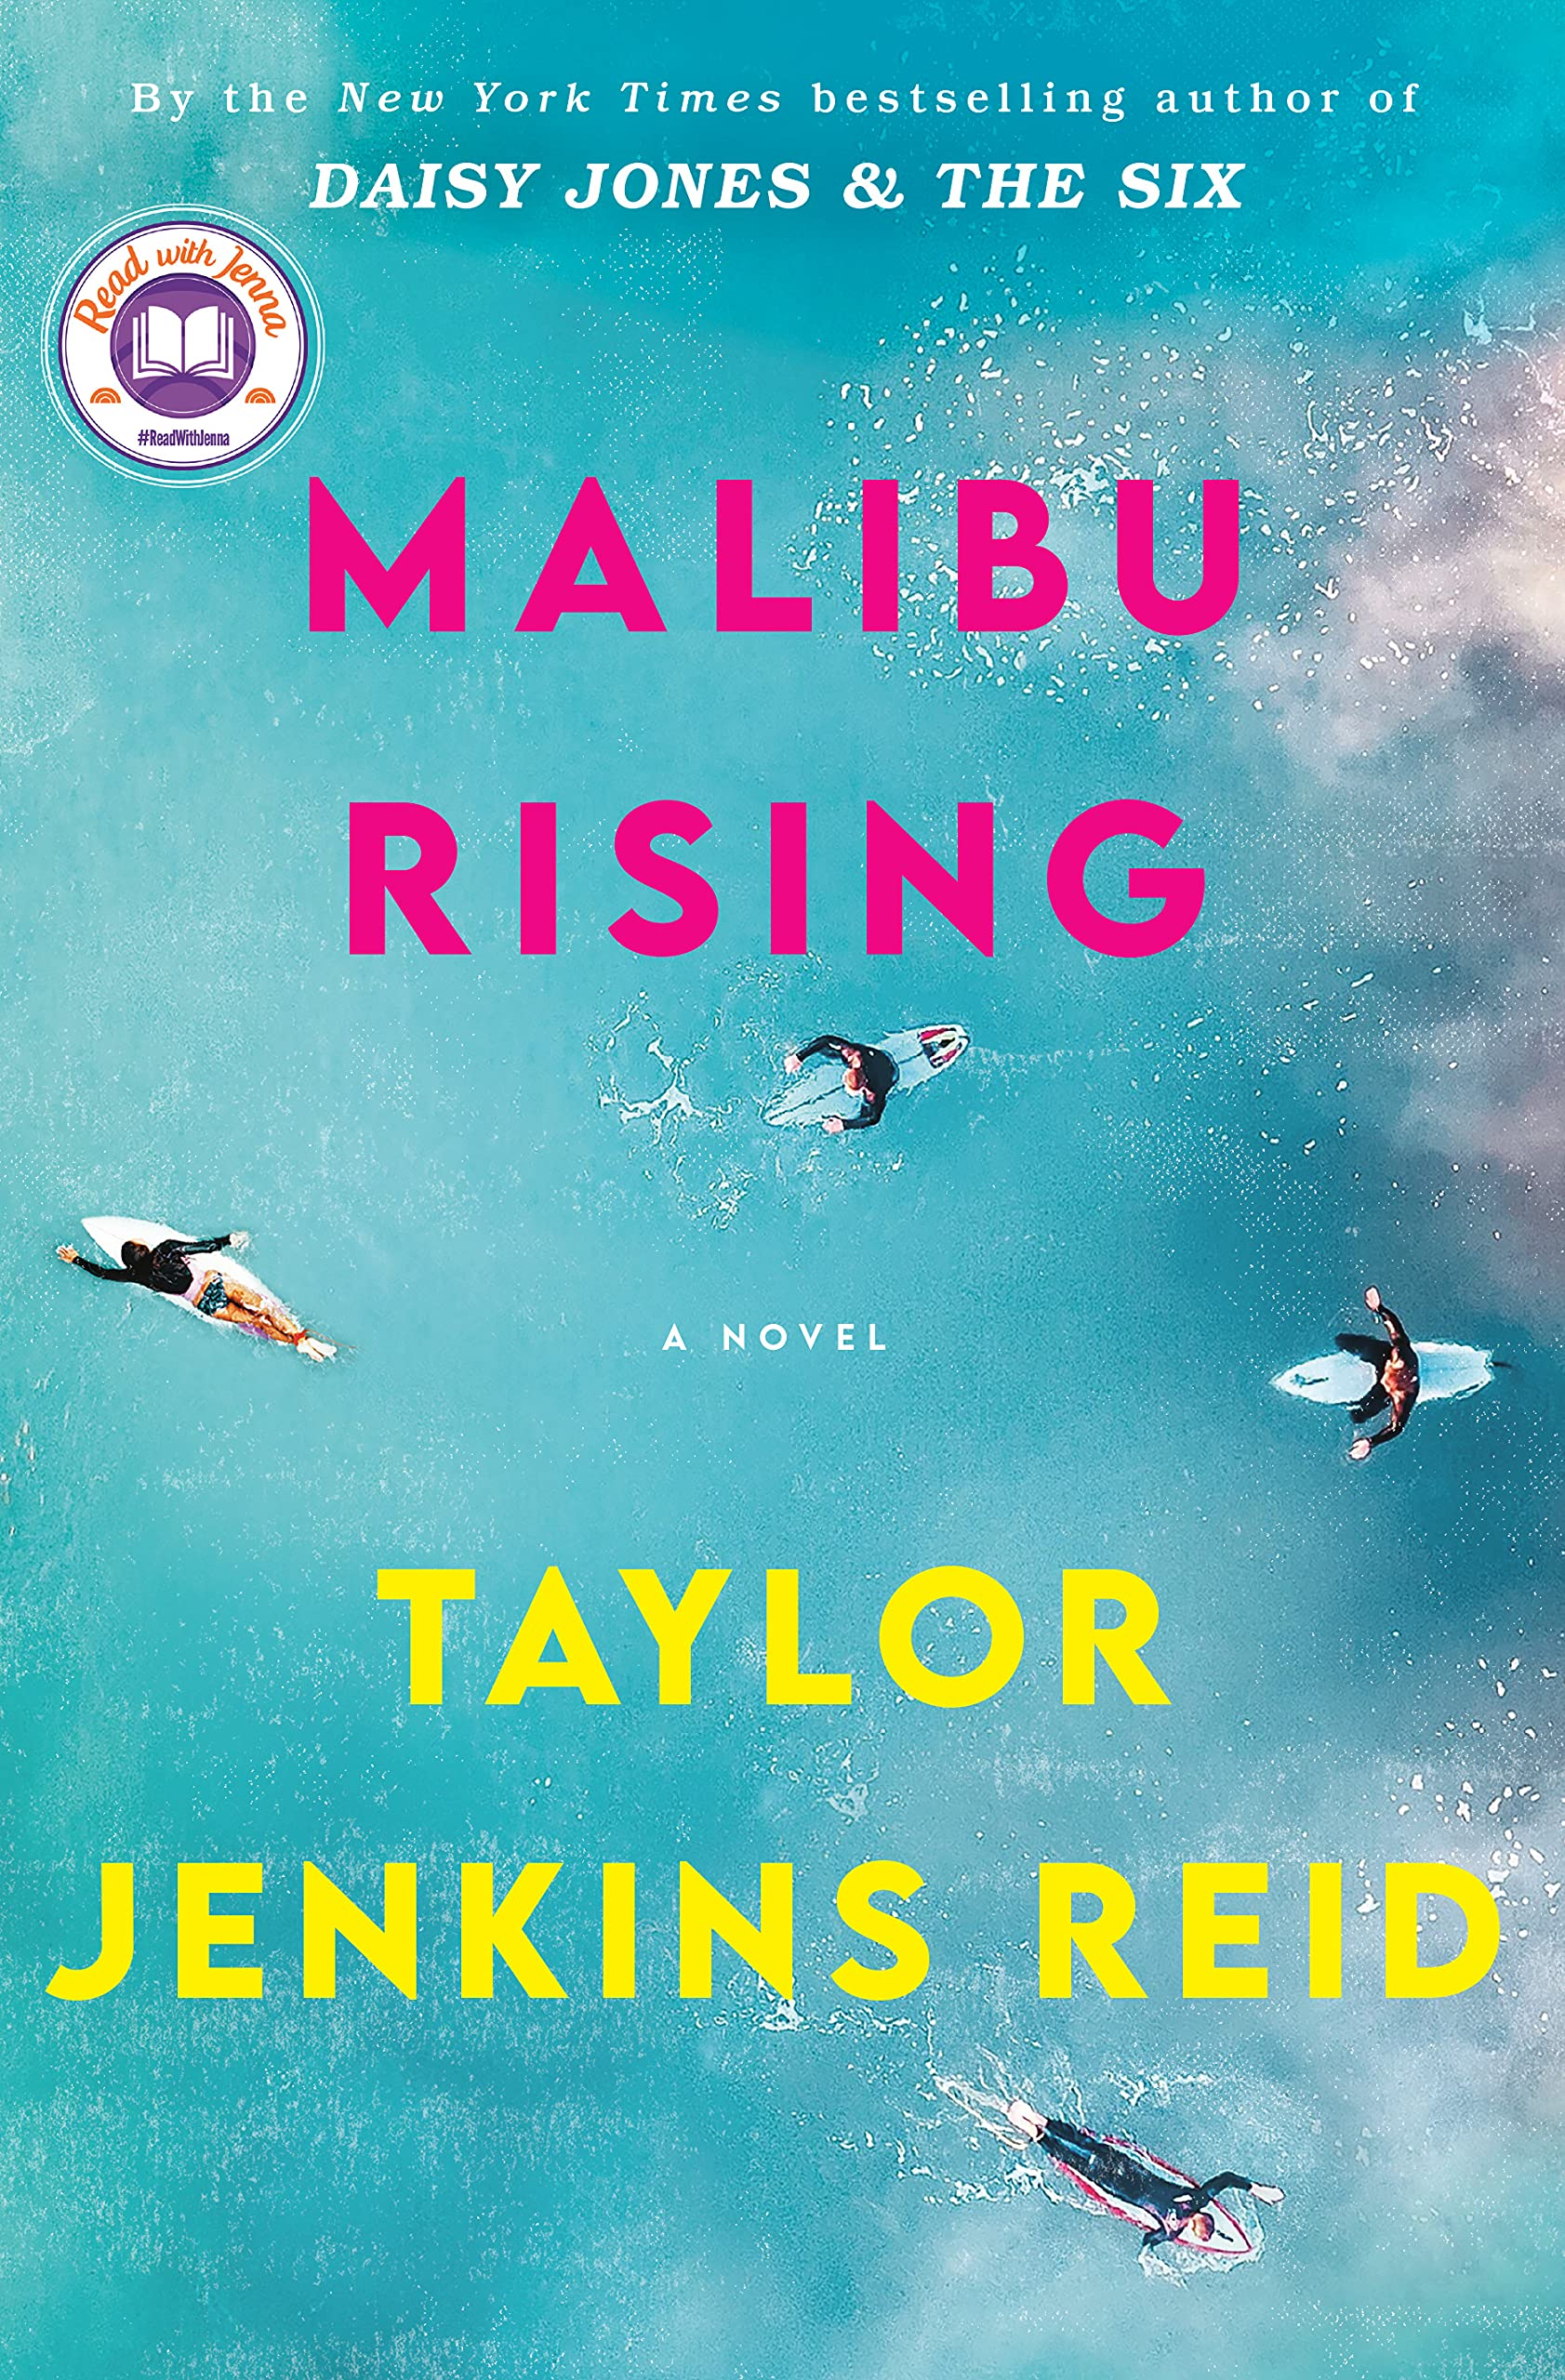 Cover image of Malibu Rising by Taylor Jenkins Reid